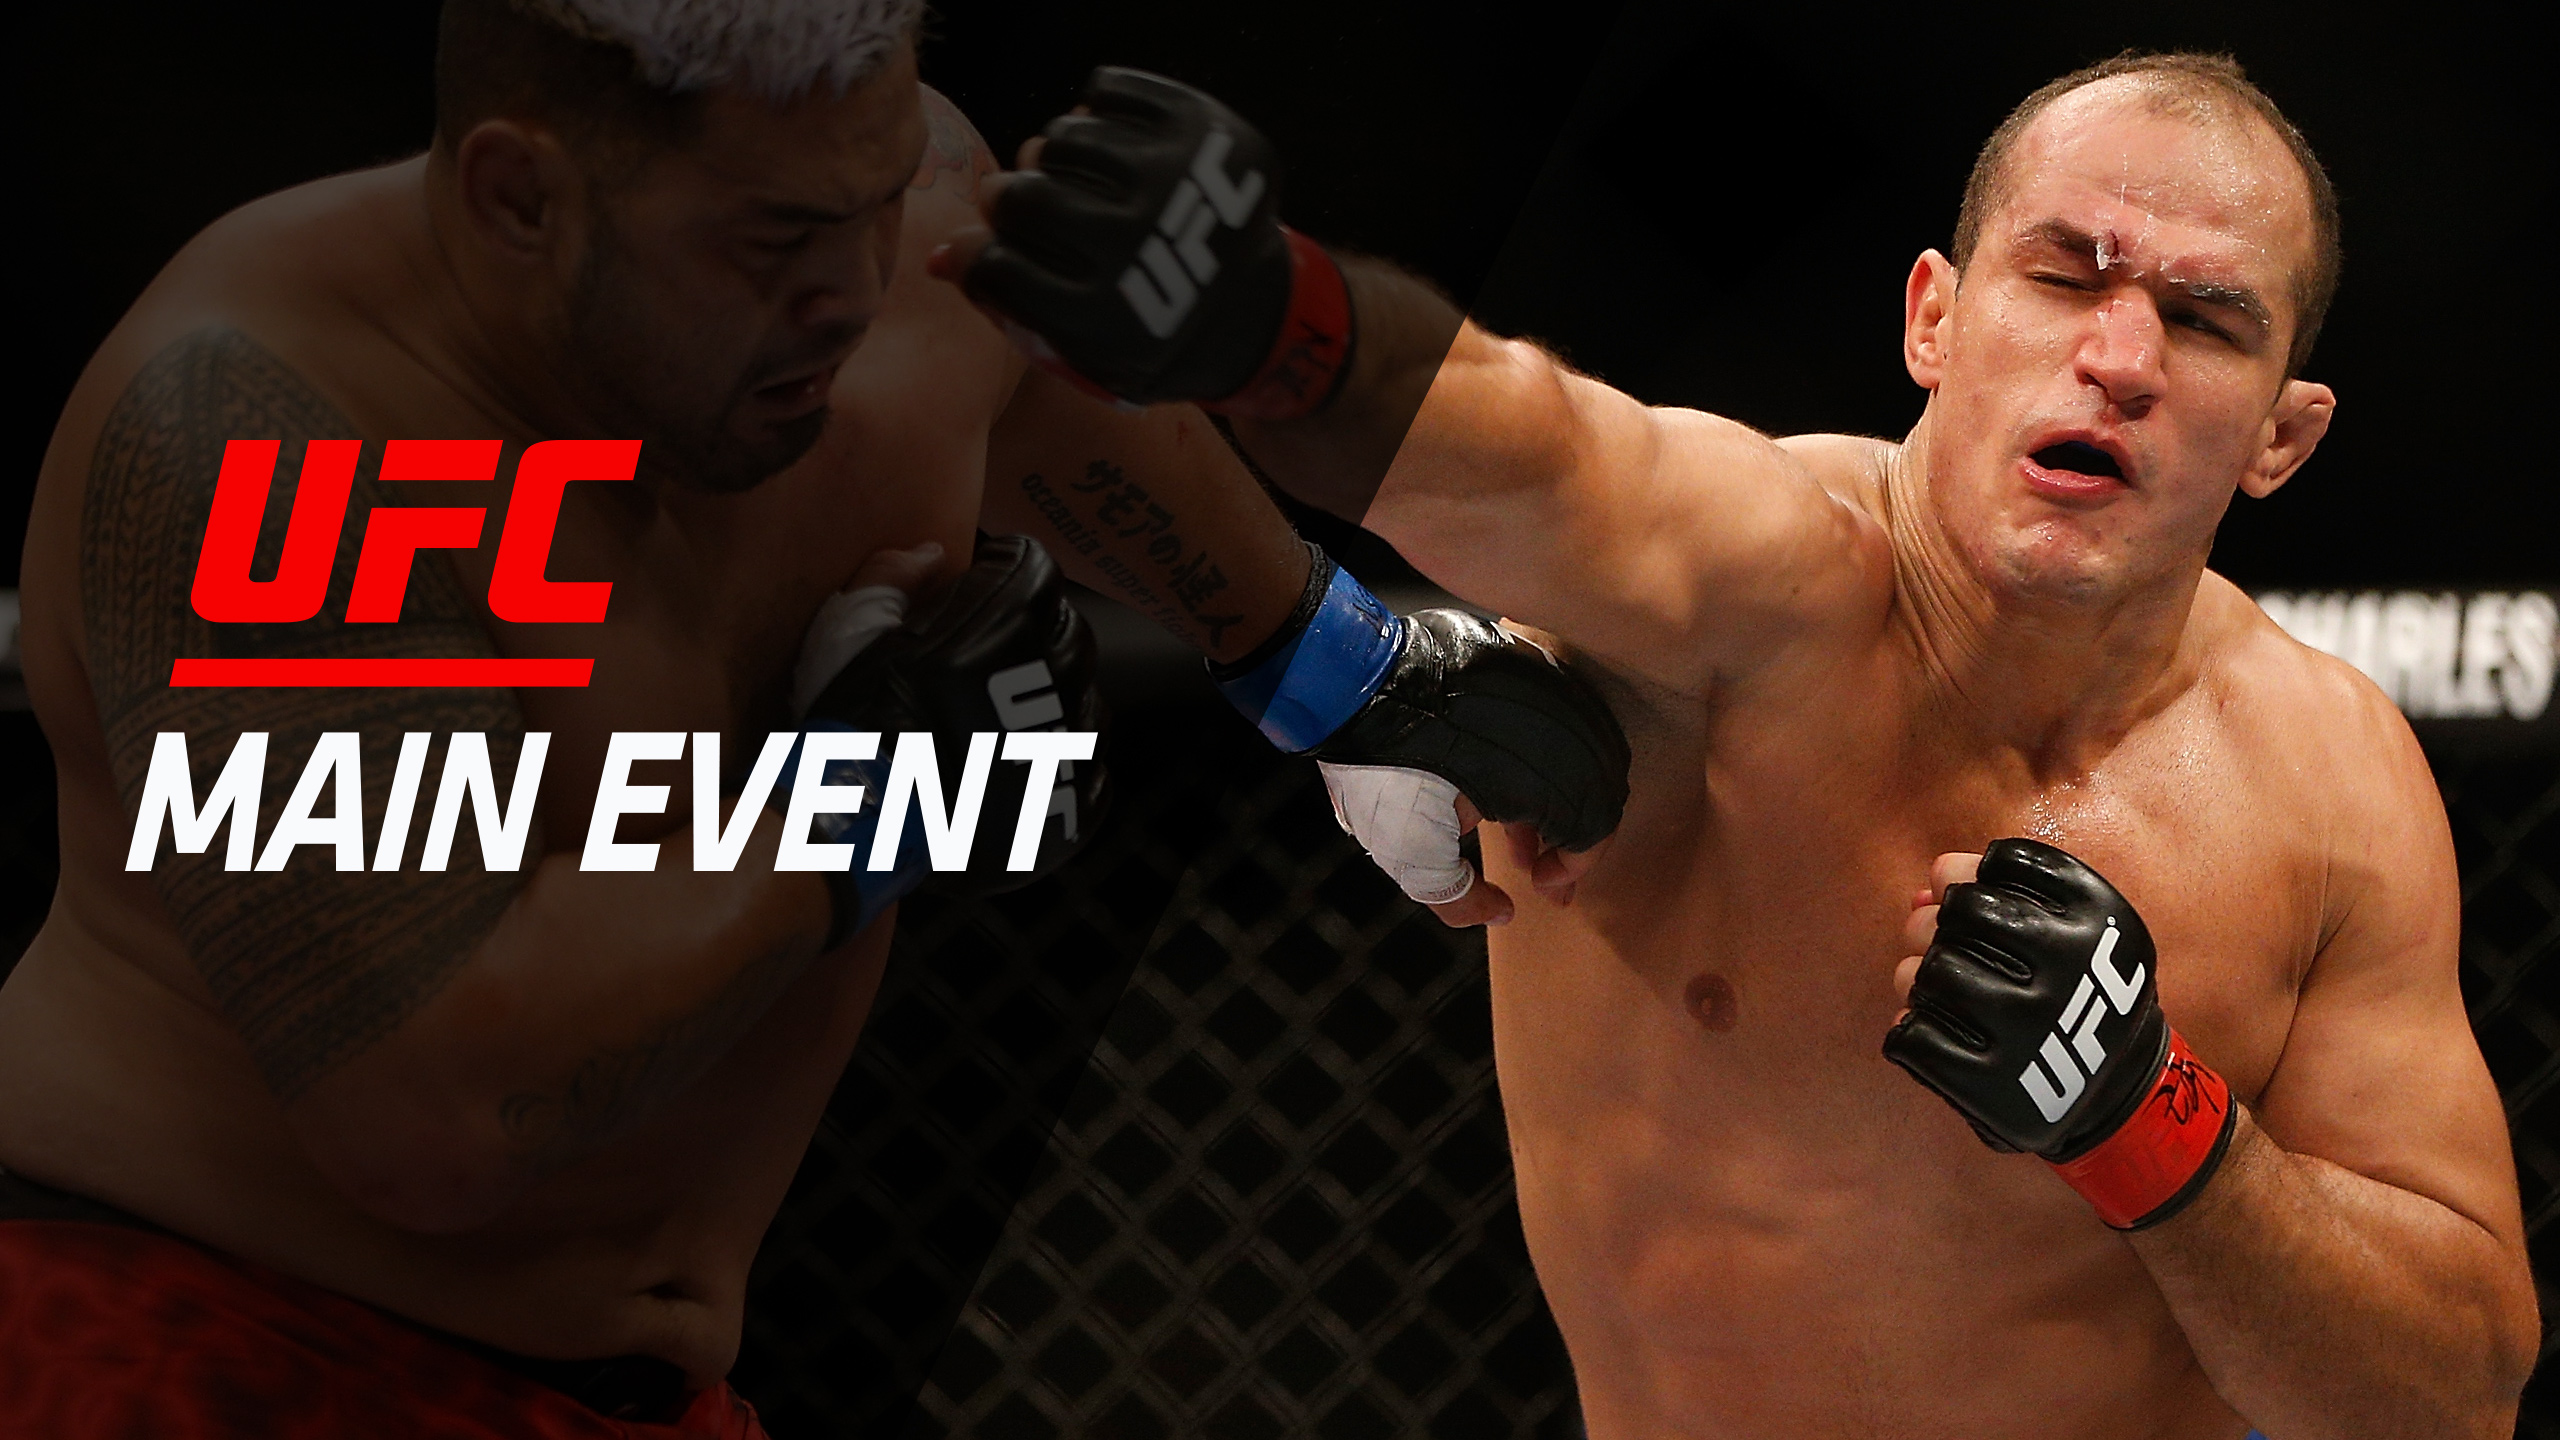 UFC Main Event: Velasquez vs. Bigfoot 2/Dos Santos vs. Hunt